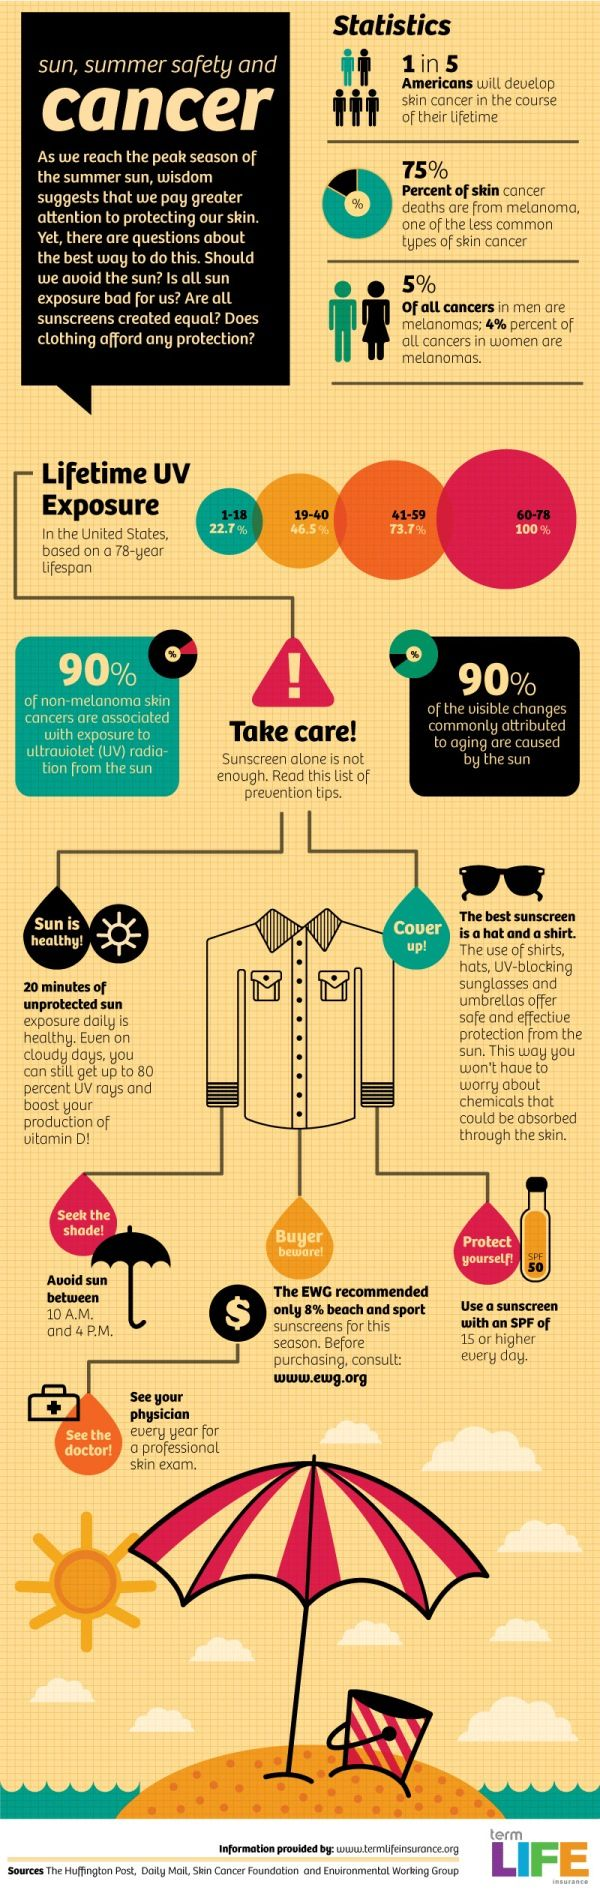 #Sun Facts #infographic Take care of your skin and refriend me!